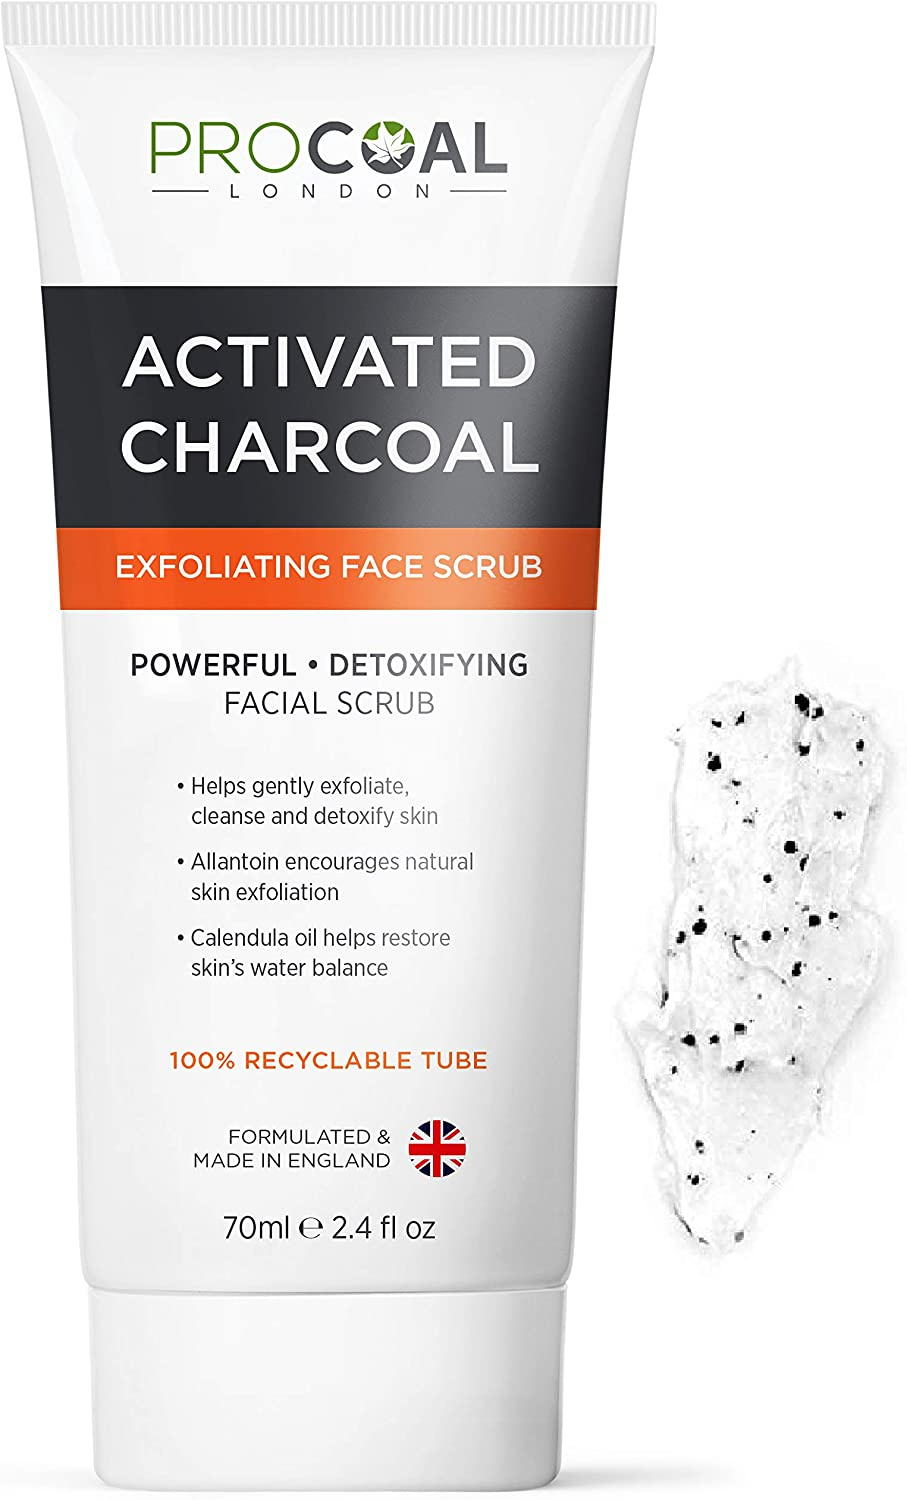 Face Scrub Premium Exfoliating Charcoal Face Scrub 70ml By